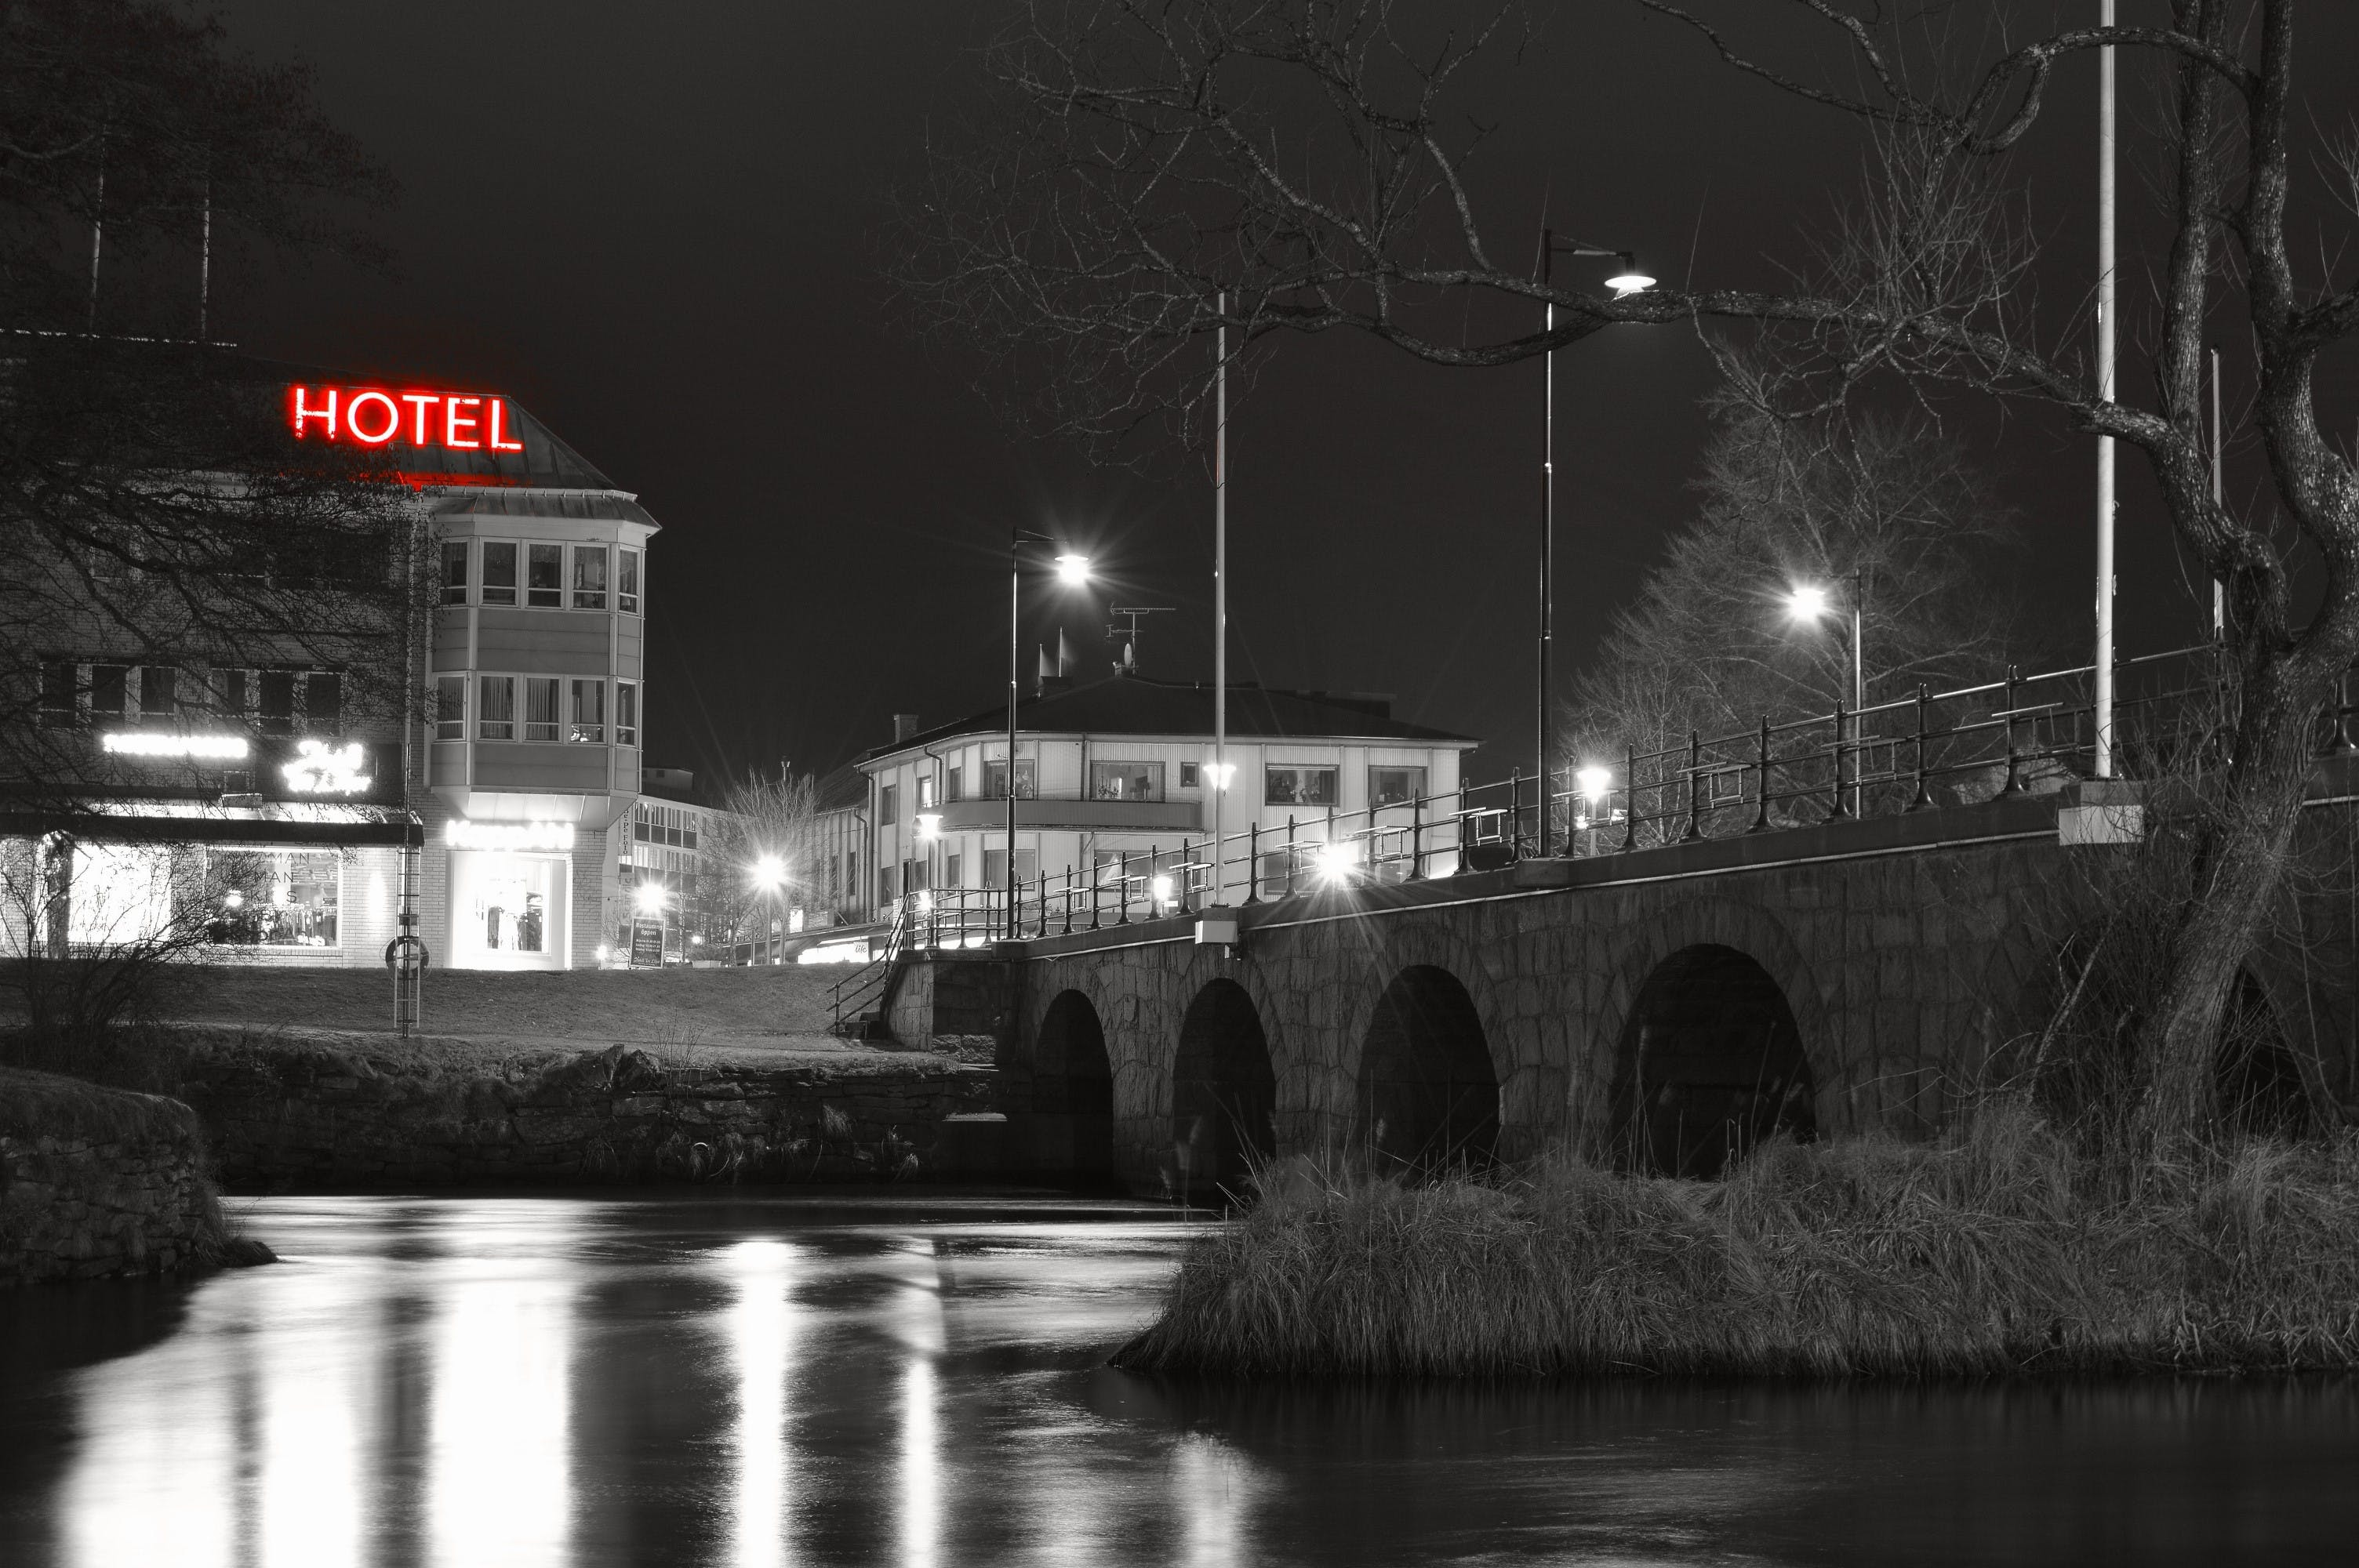 Grayscale Photo of Hotel Near River